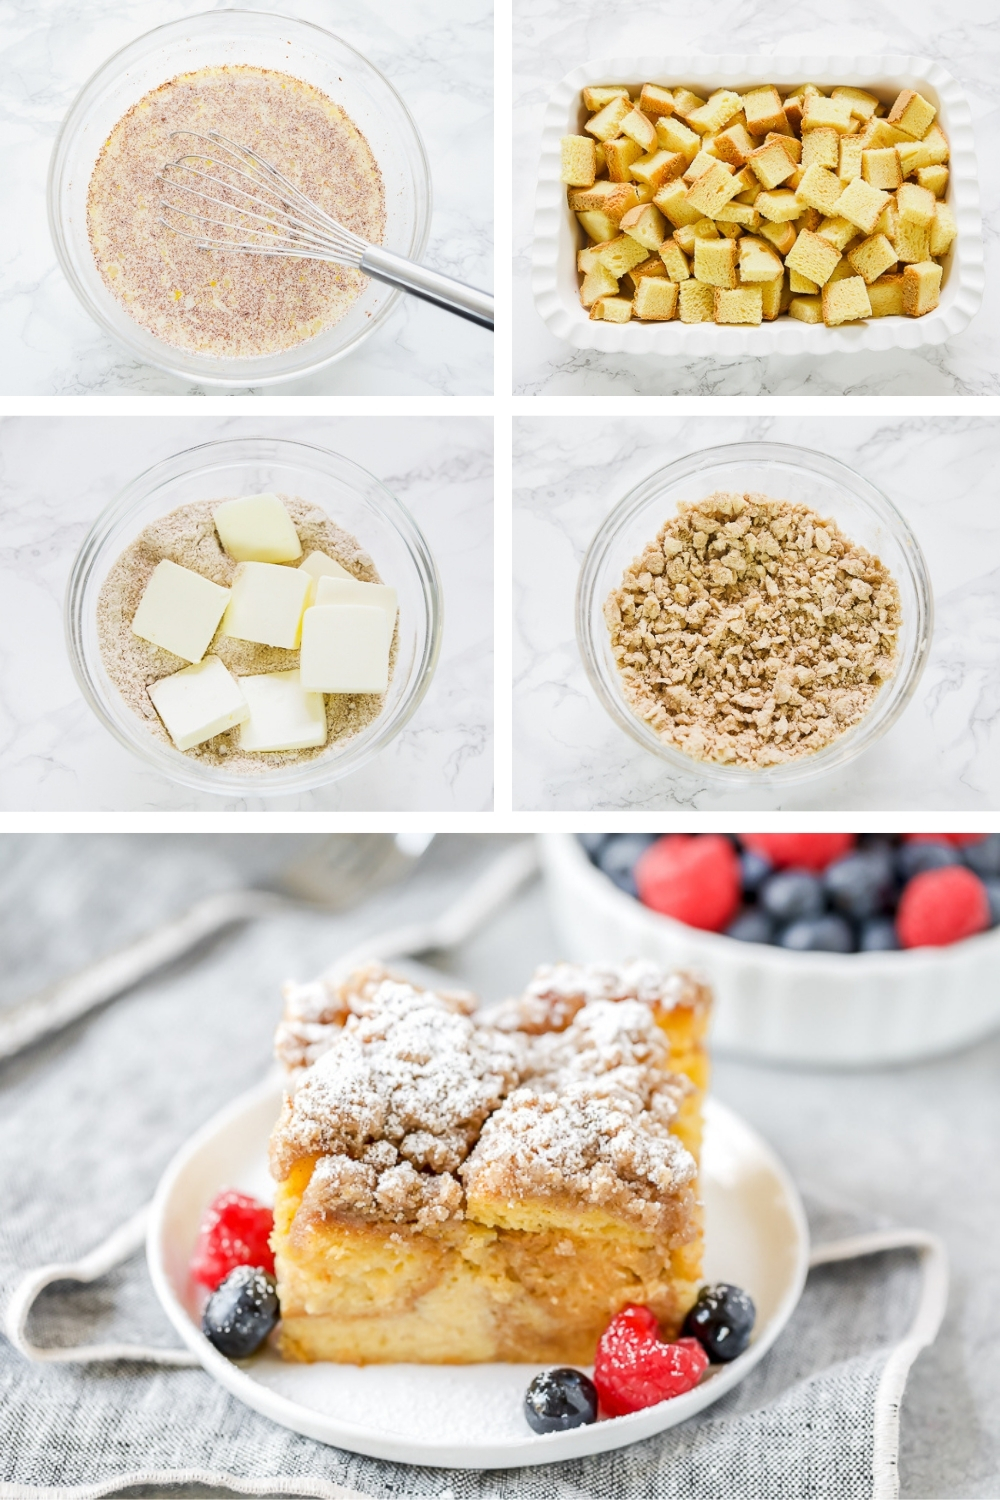 how to make overnight french toast step-by-step